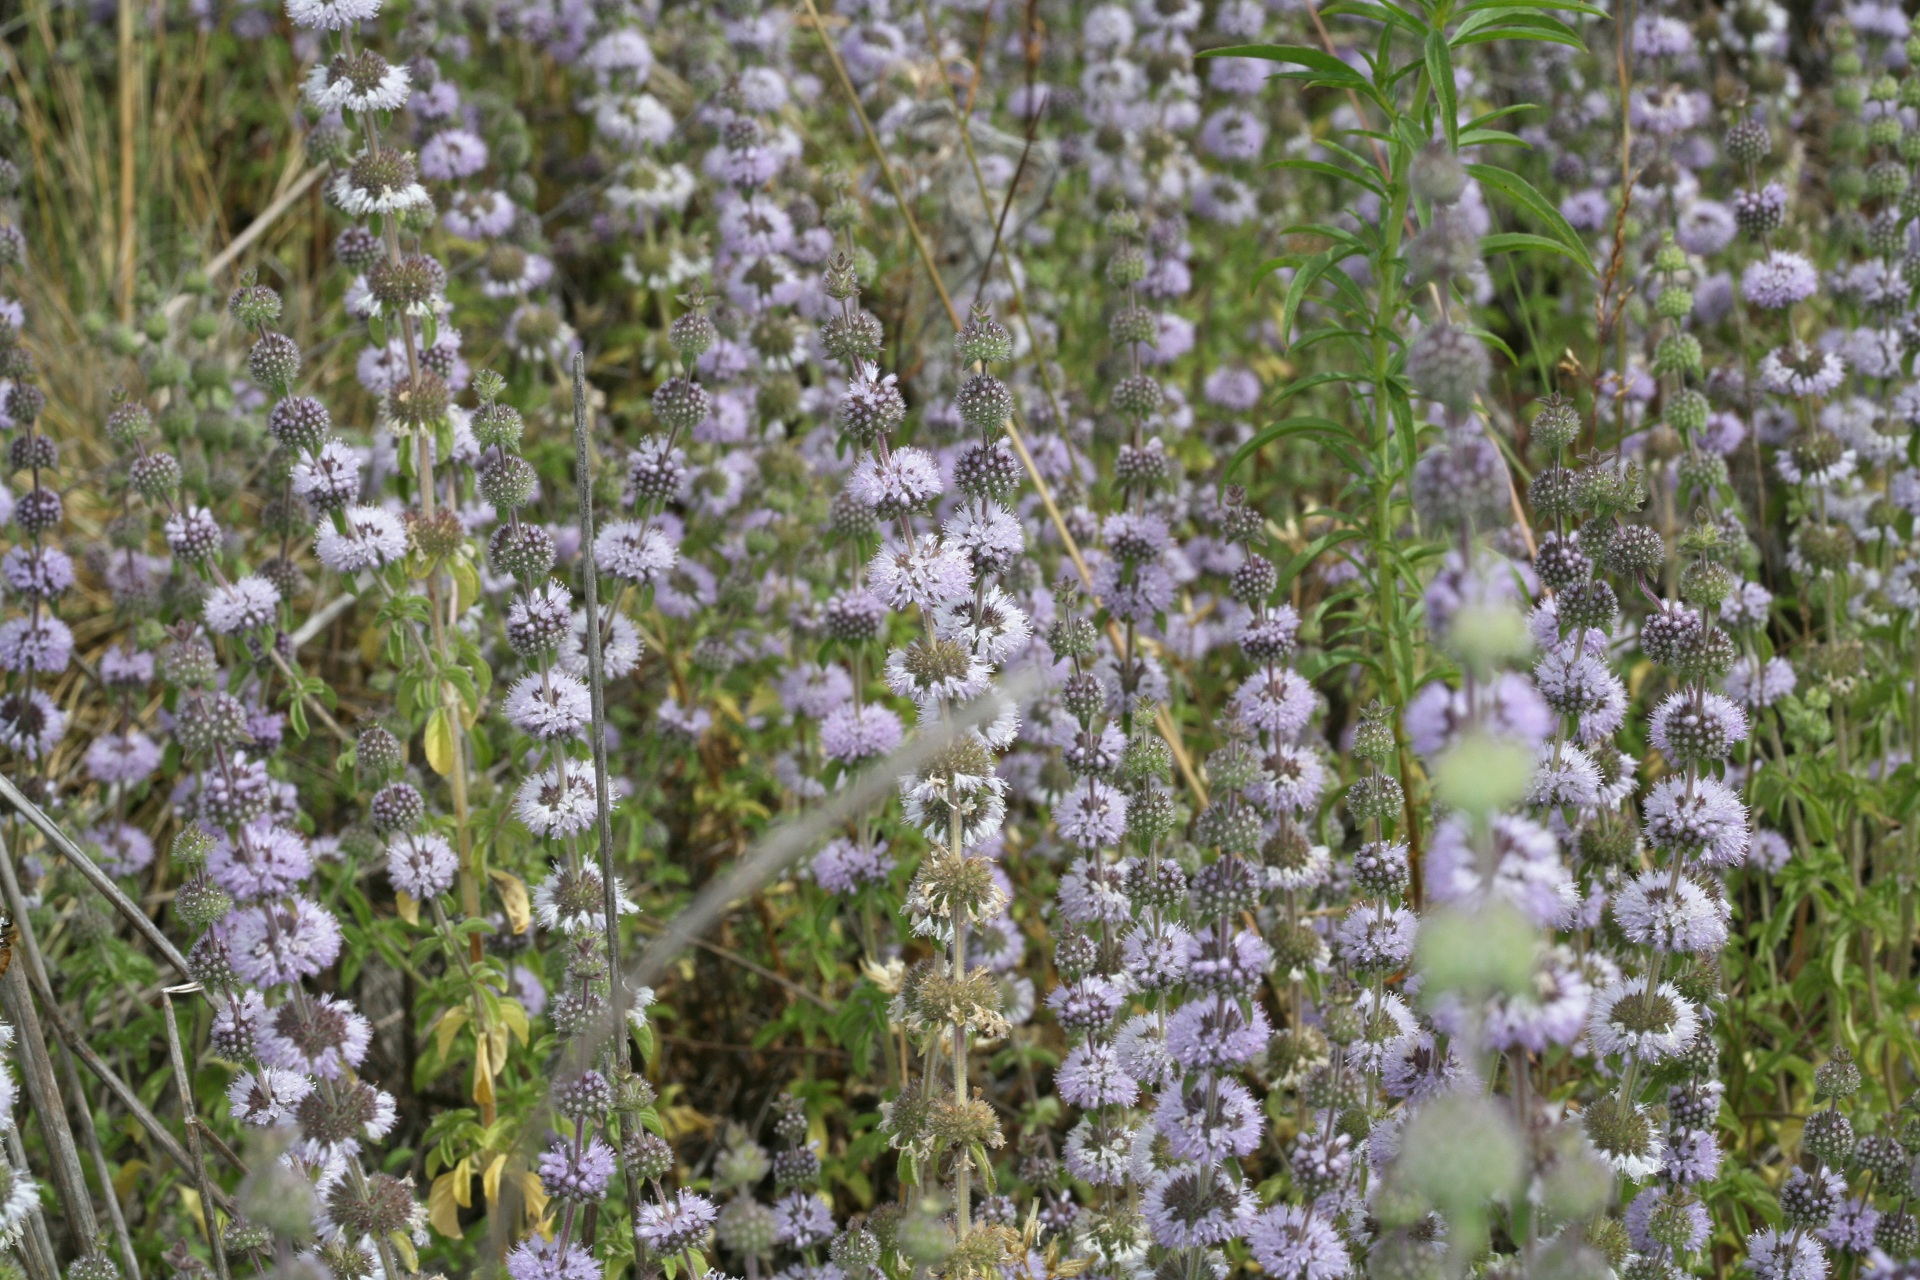 Chemical Composition Of Mentha Pulegium L Pennyroyal: 17 Easy To Grow Plants That Repel Mosquitoes